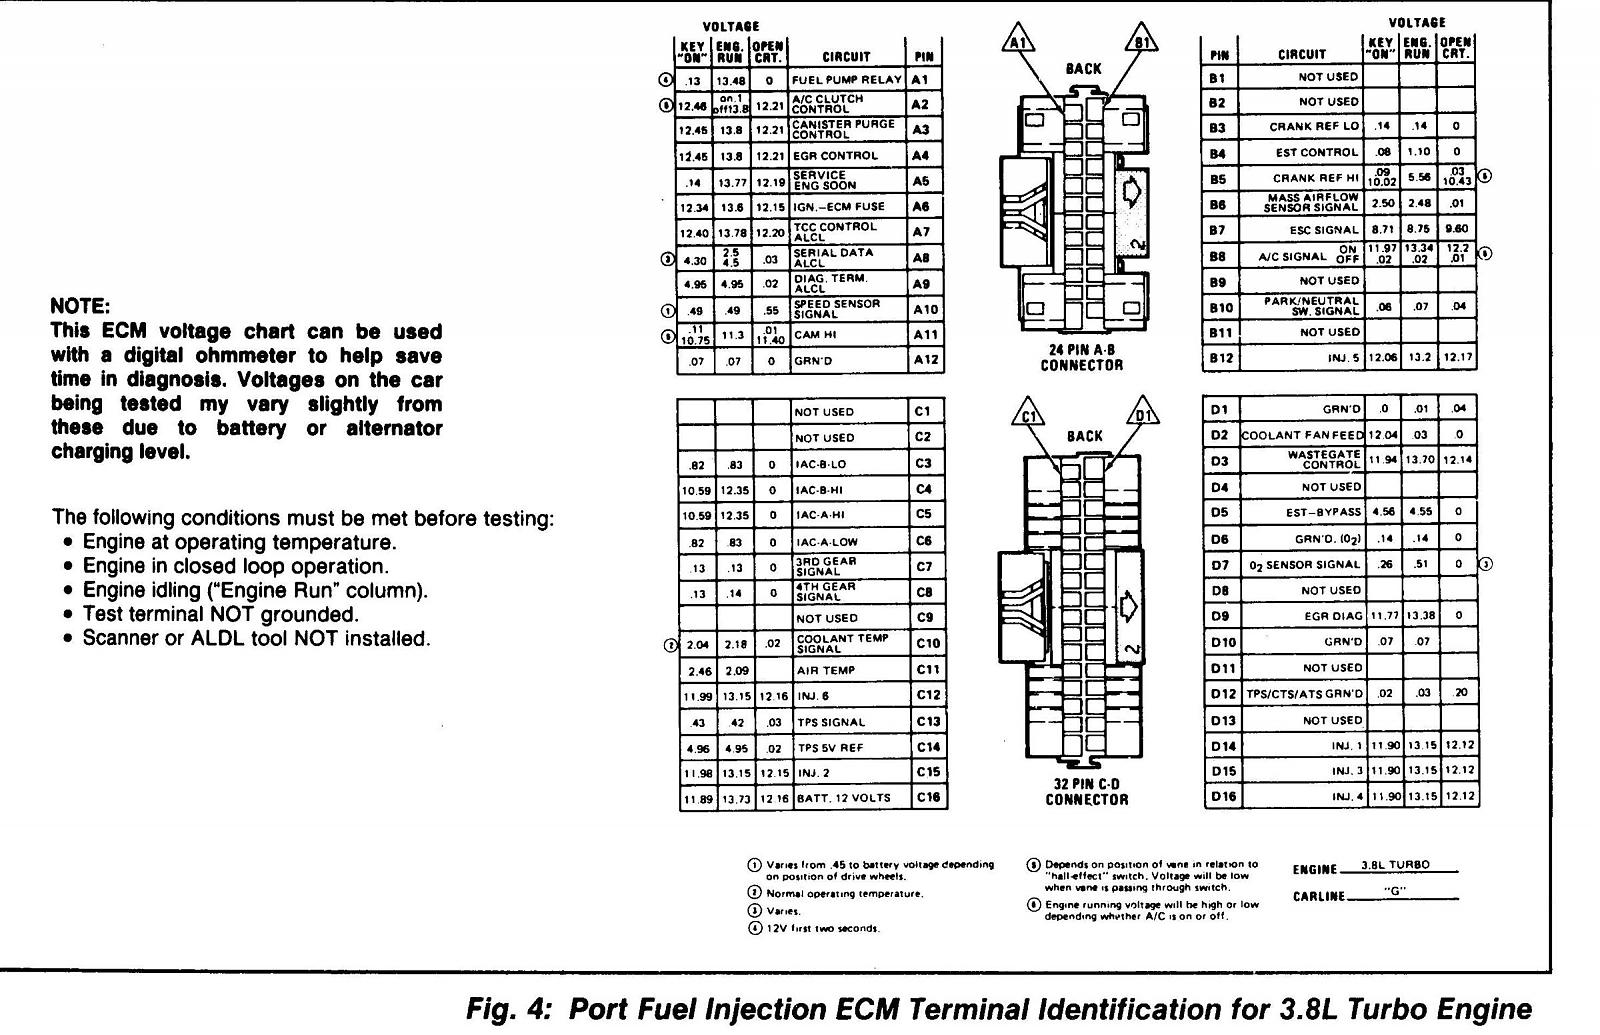 32 Pin Gm Radio Wiring Diagram 2000 buick lesabre radio